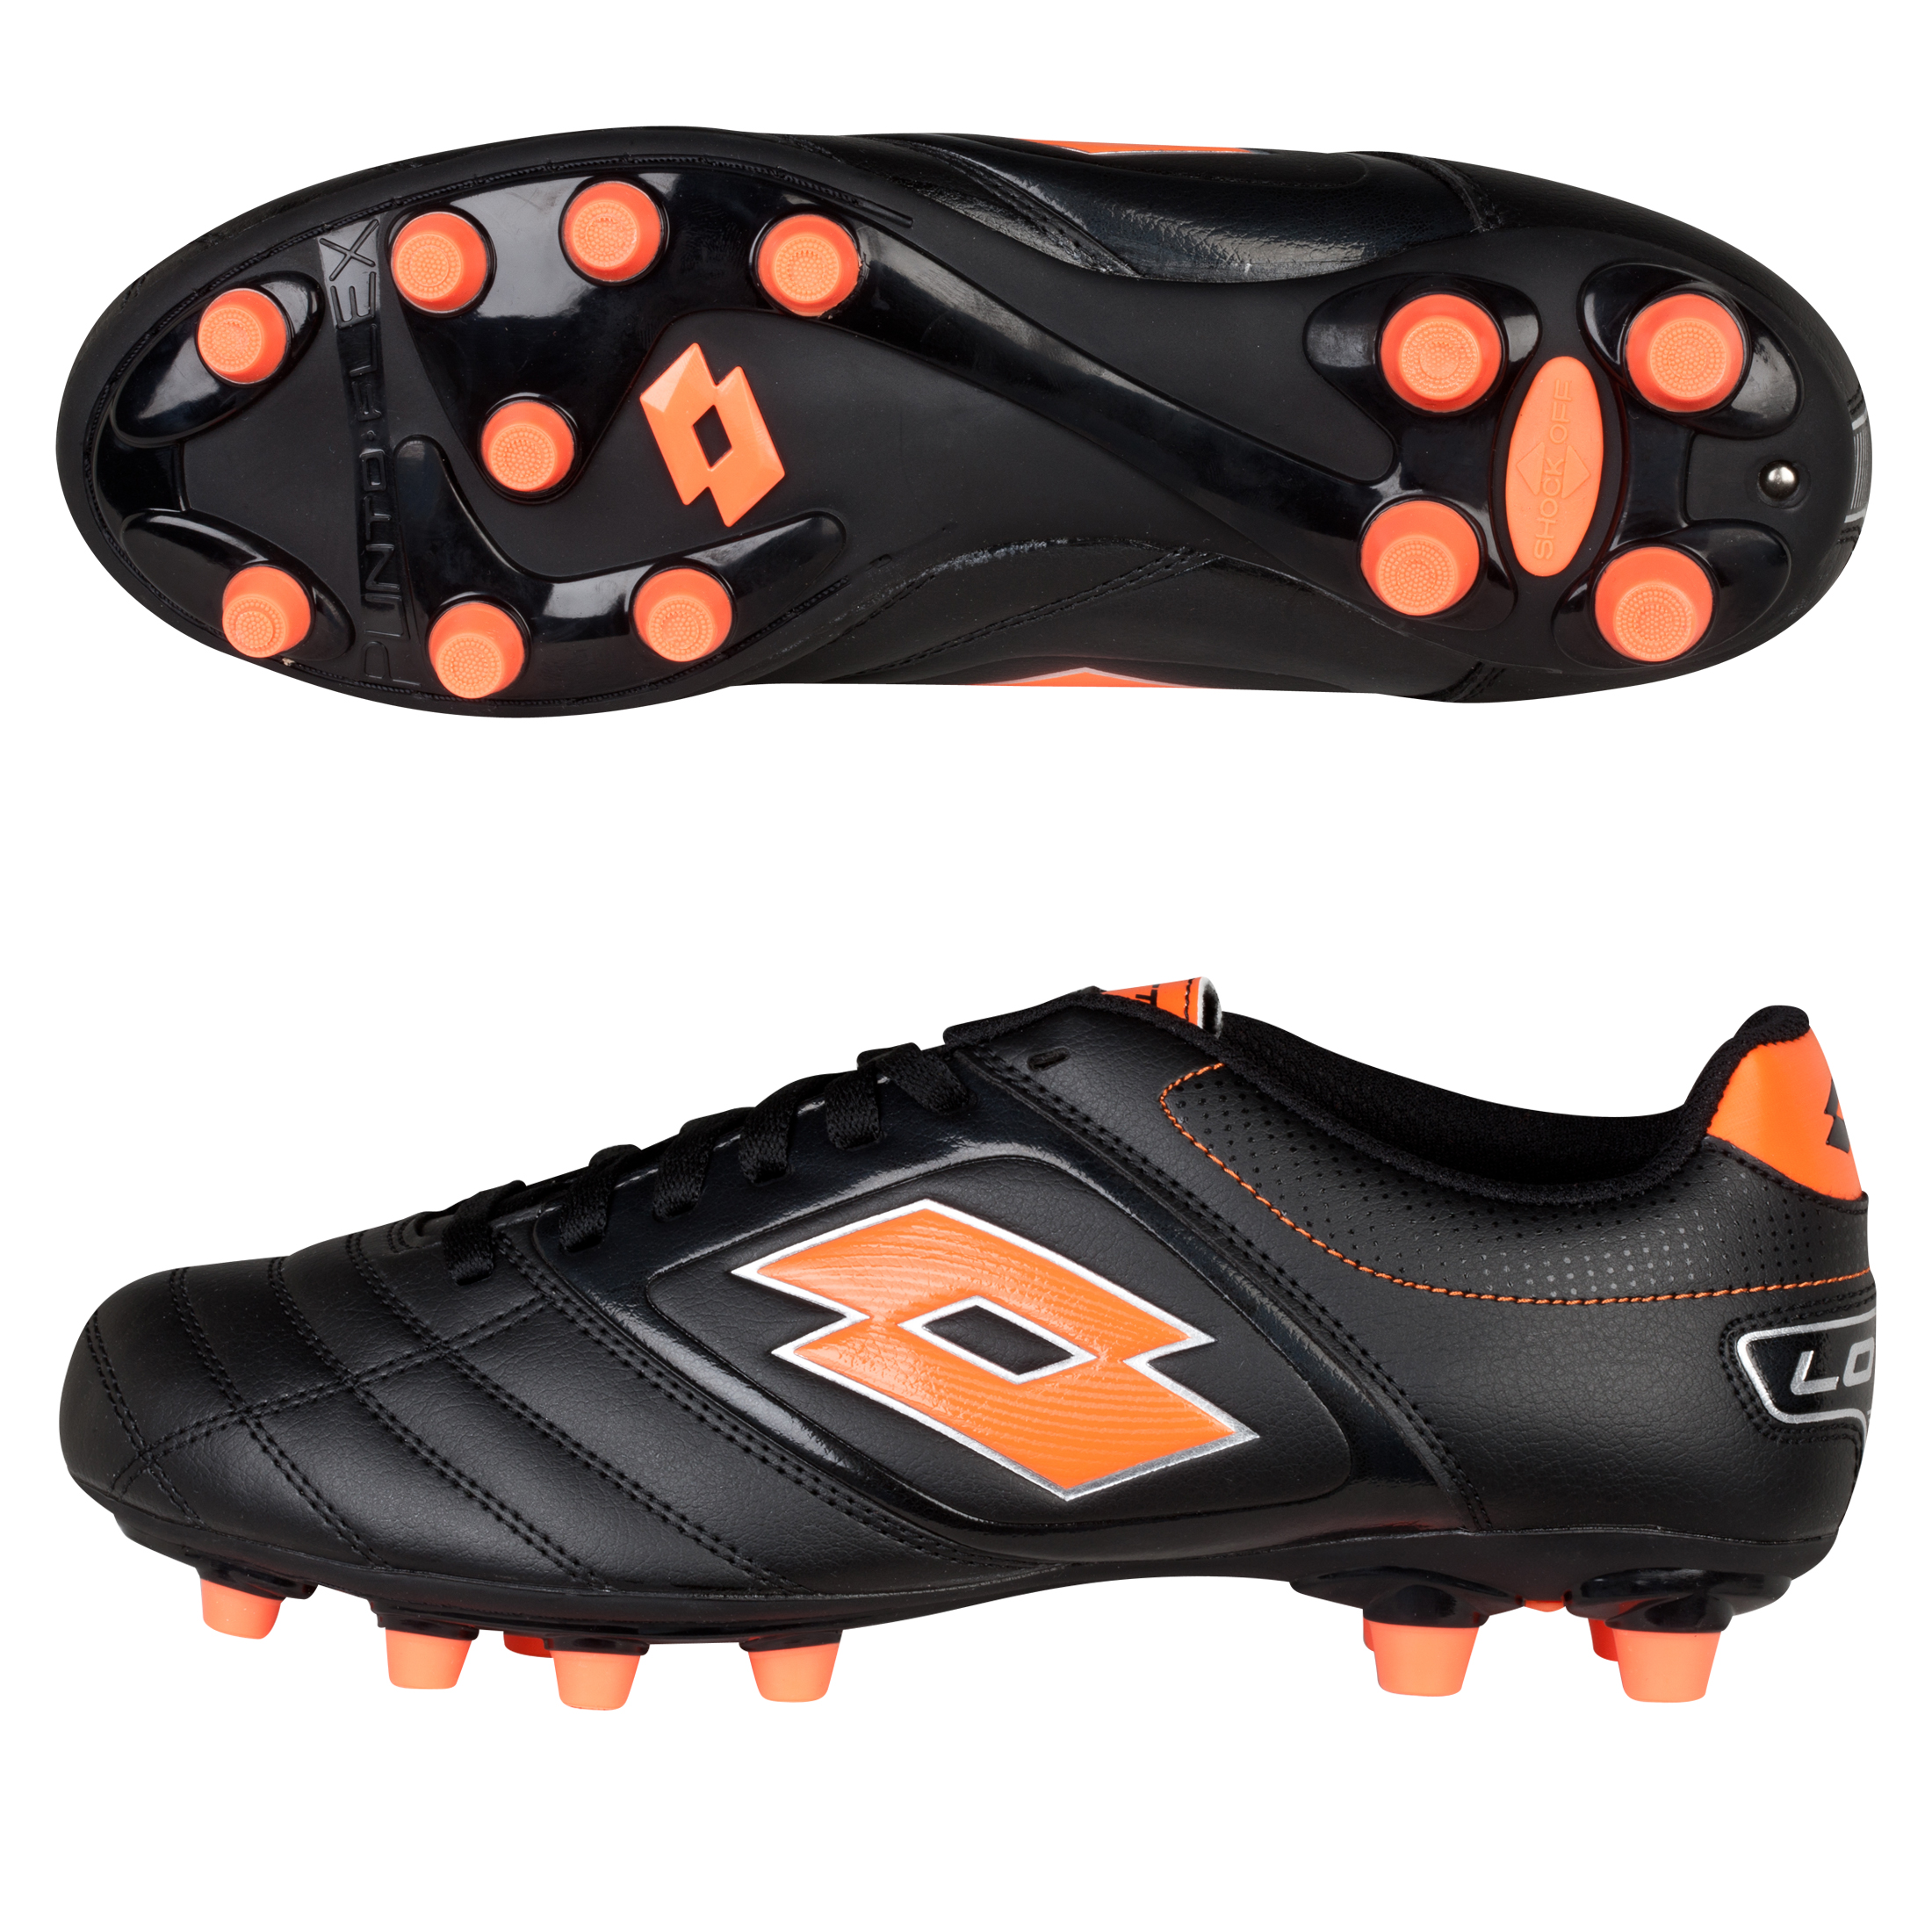 Lotto Stadio Potenza 500 Firm Ground Football Boots - Black/Orange Neon